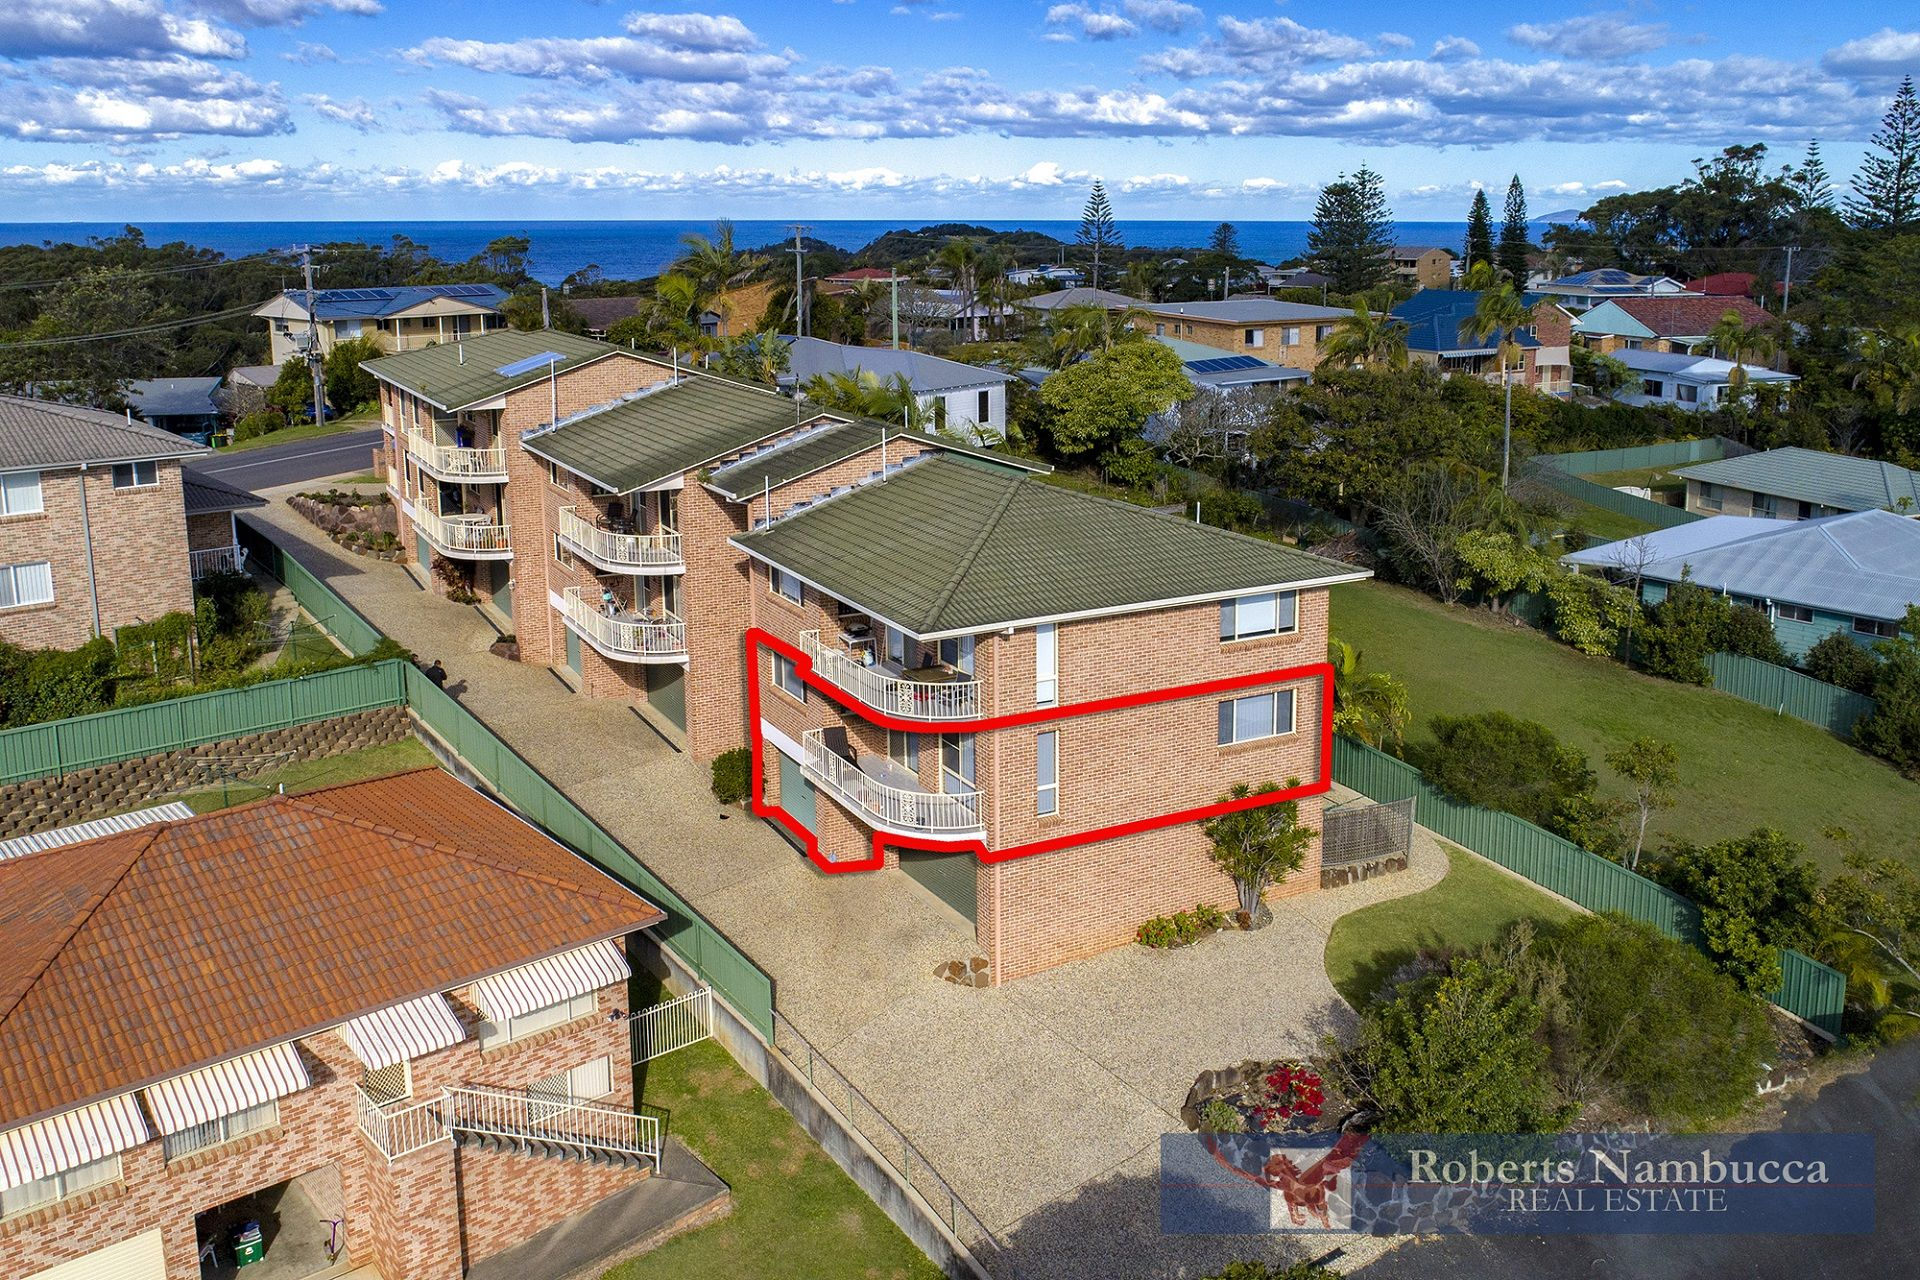 Nambucca Heads Real Estate: Investment or Permanent Sea-Change